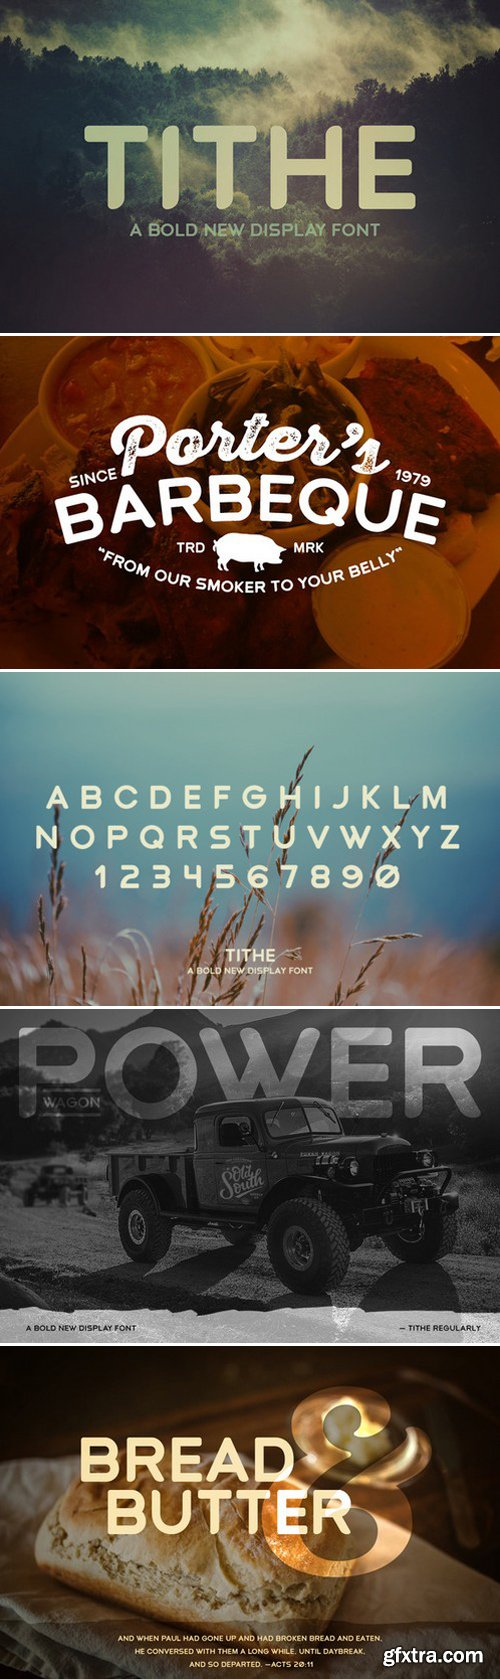 CM - Tithe - A Bold New Display Font 433769